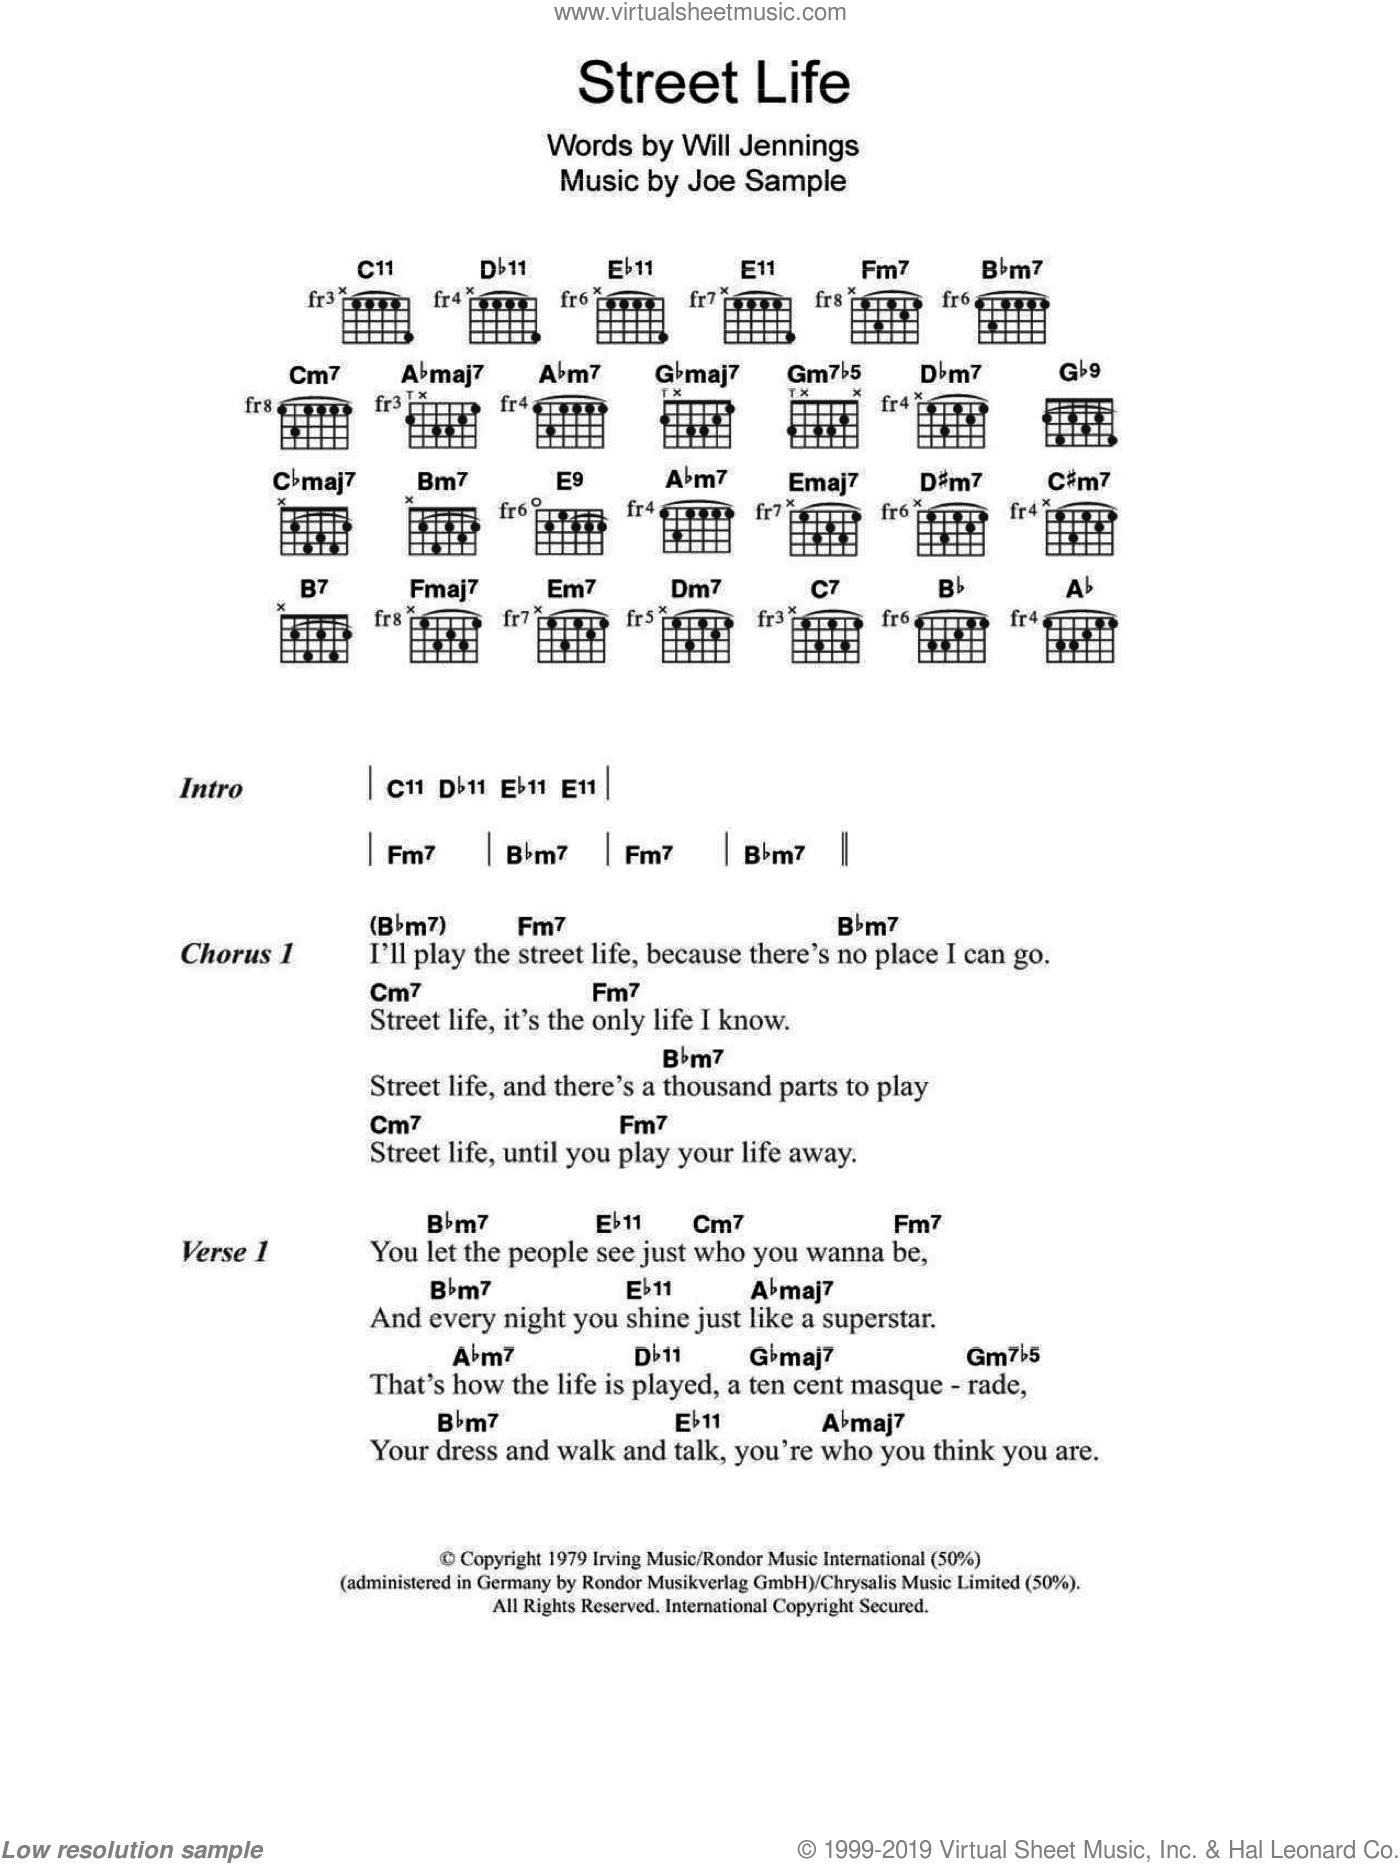 Crusaders - Street Life sheet music for guitar (chords) [PDF]